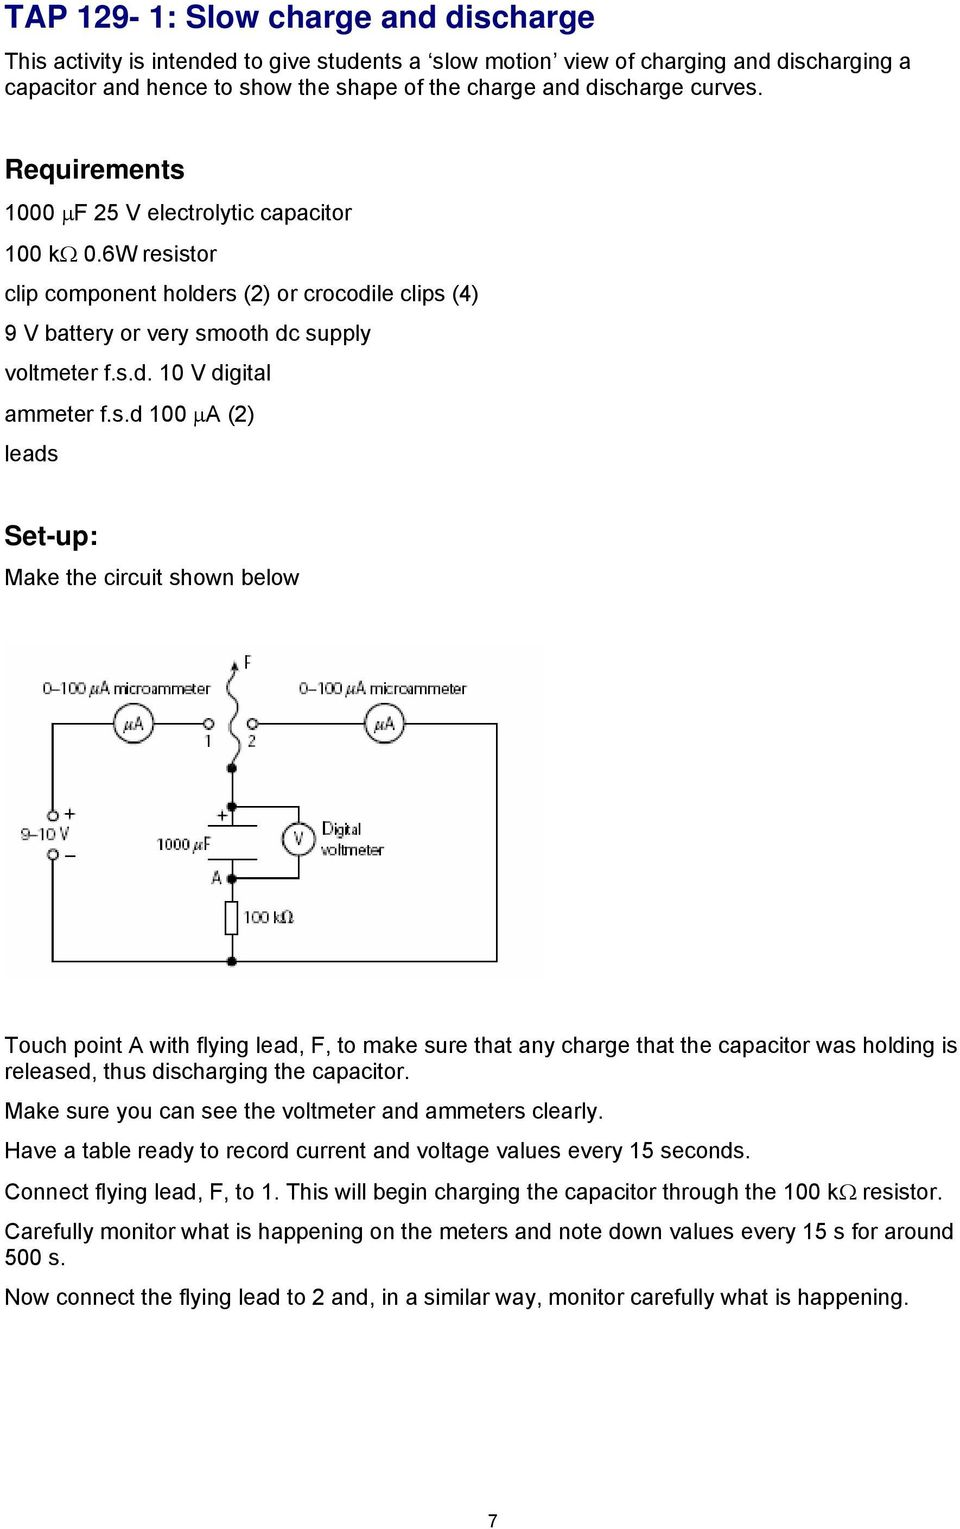 Episode 129 Discharge Of A Capacitor Q O E T Cr Pdf Discharging Circuit Sd 100 2 Leads Set Up Make The Shown Below